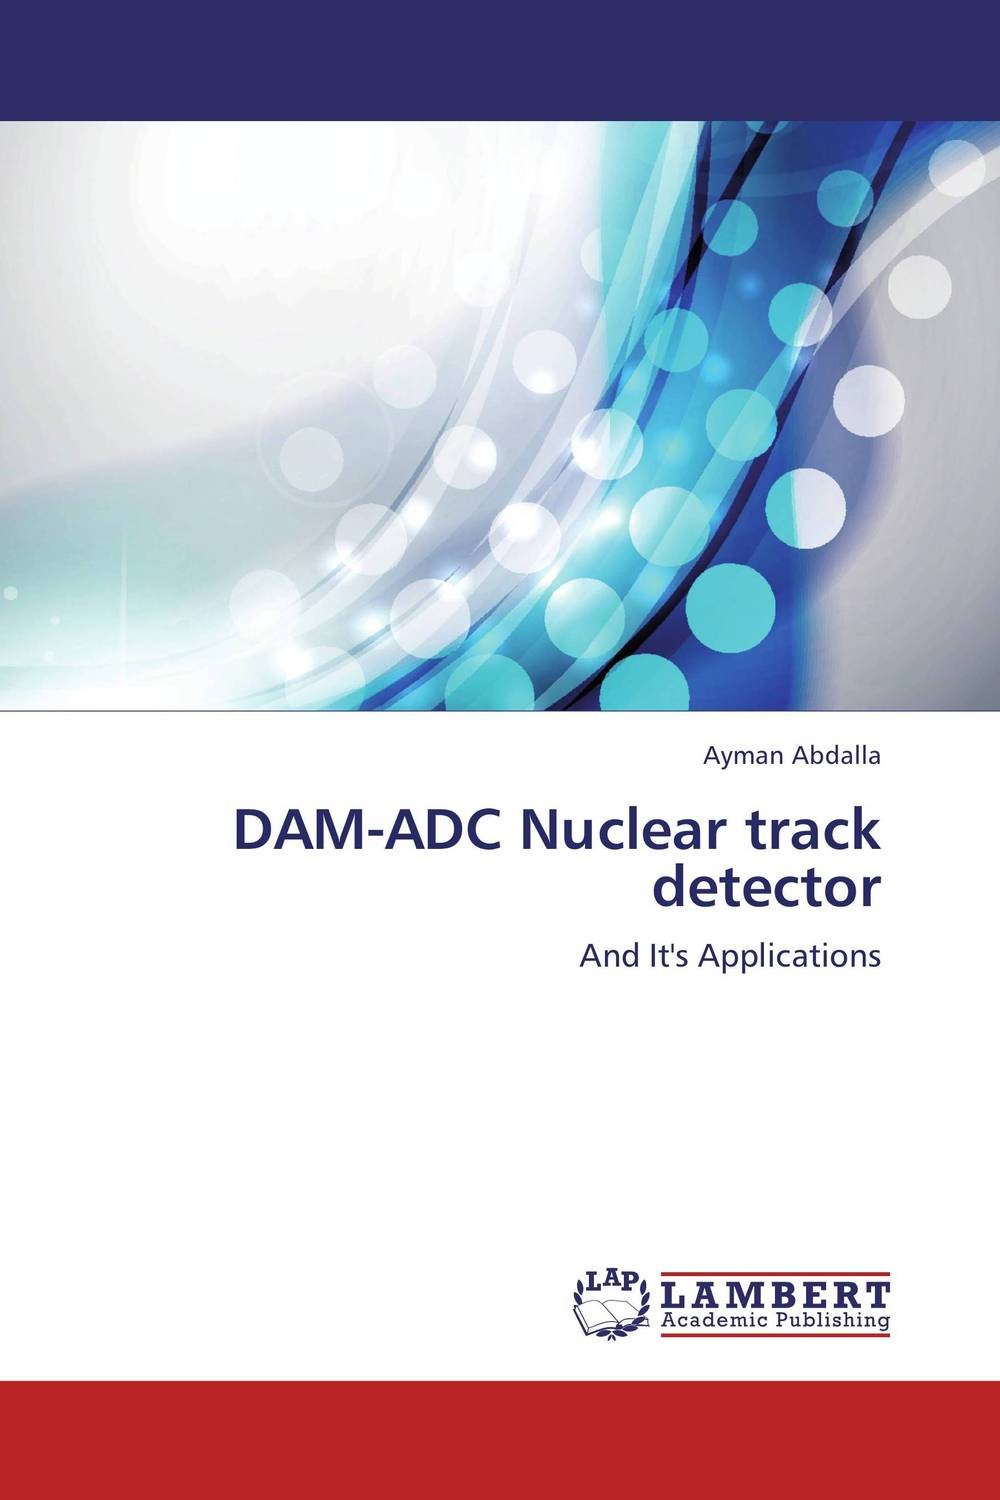 DAM-ADC Nuclear track detector nuclear radiation detector beta gamma x ray y ray b ray tube nuclear radiation dosimeter marble tester radioactive detector